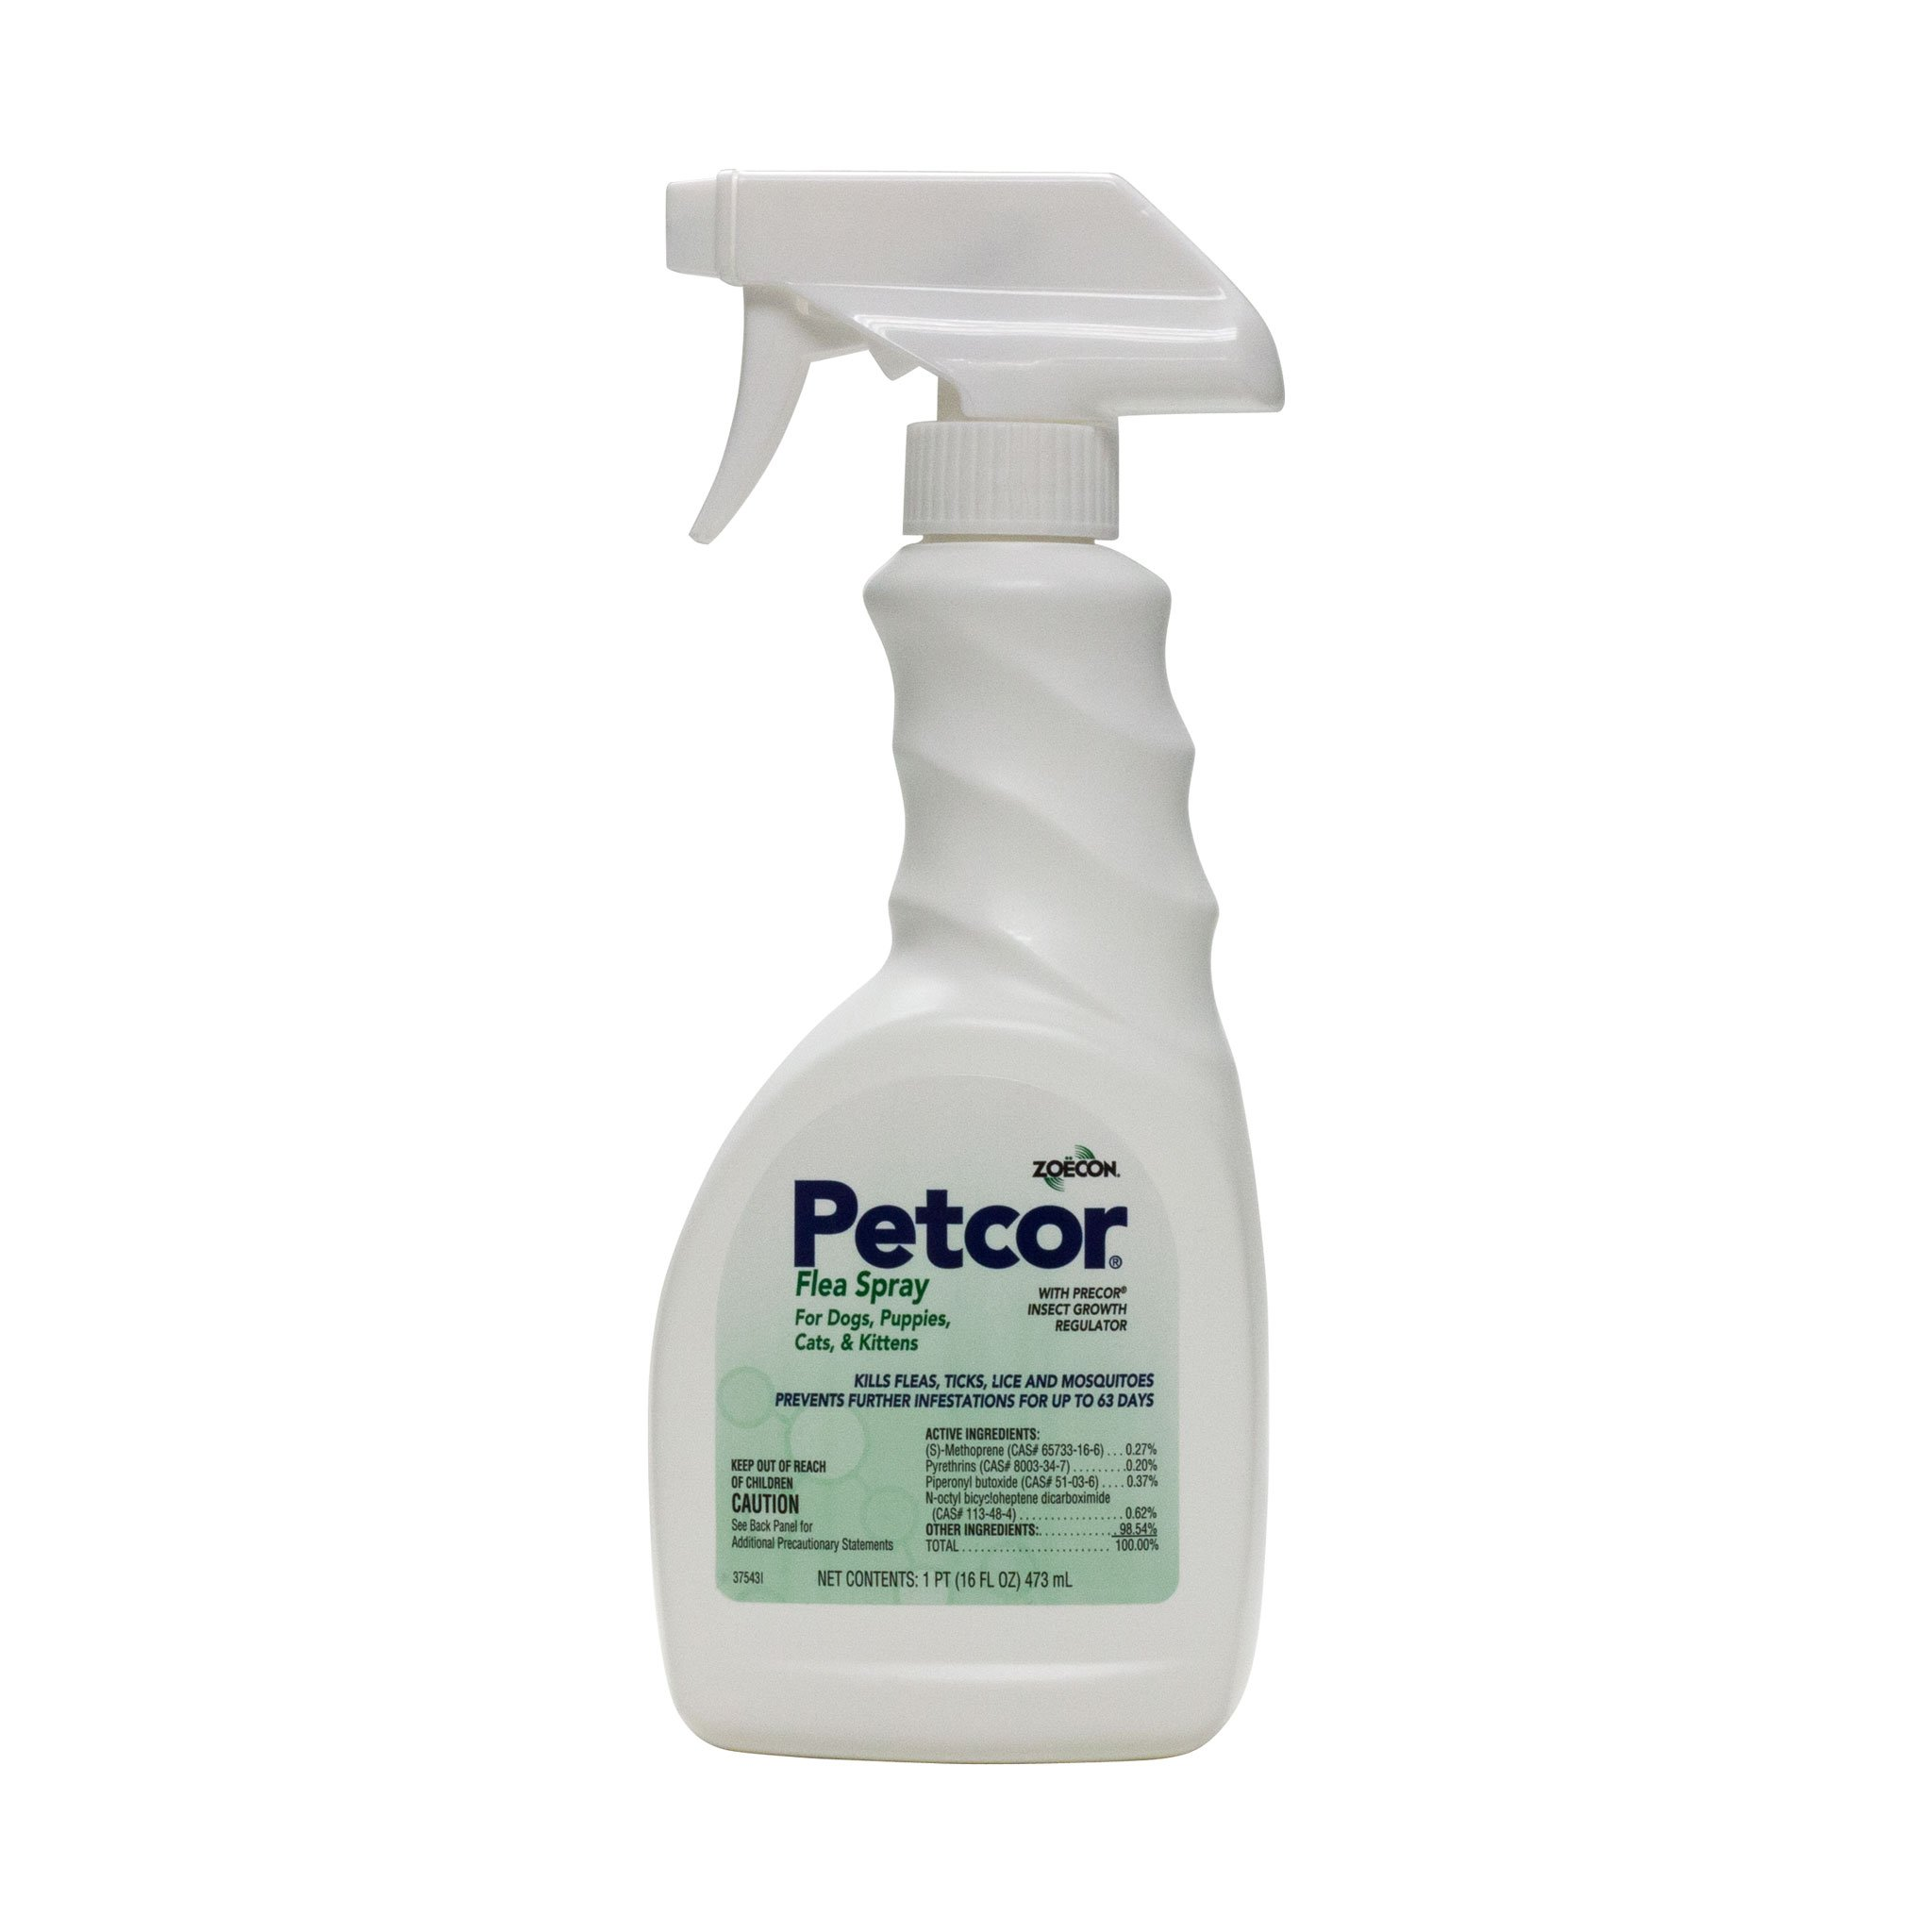 Petcor Flea Spray ZOE1009